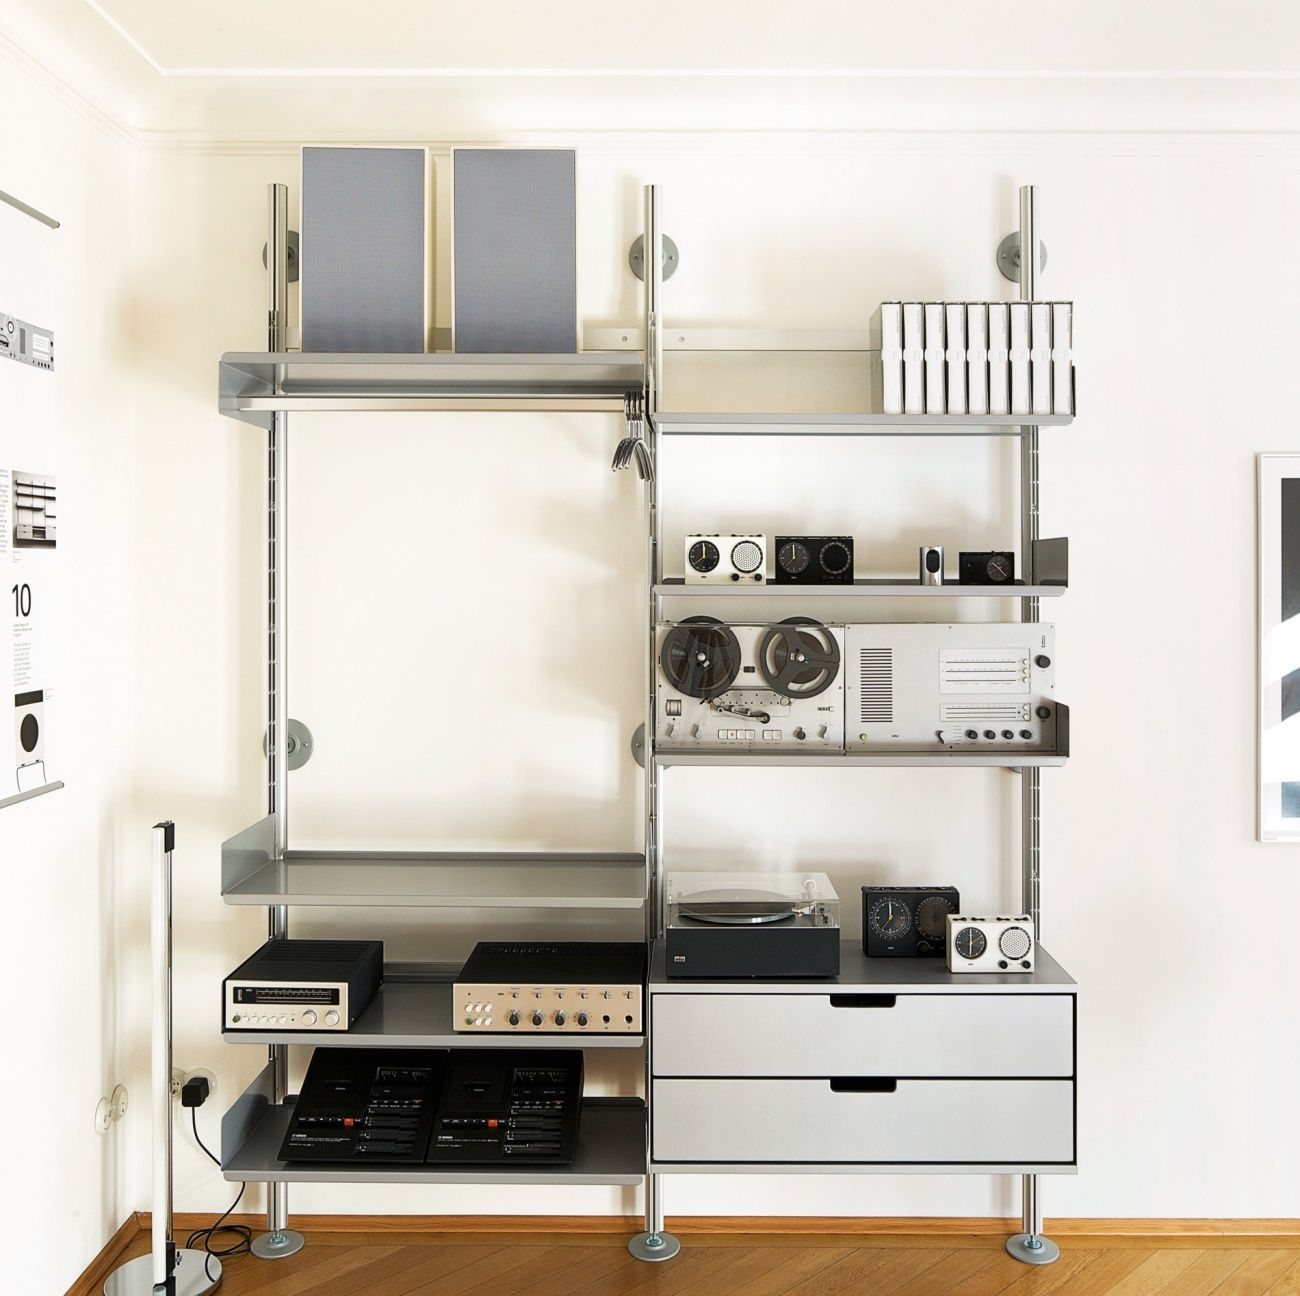 regalsystem 606 by dieter rams for vits hifi. Black Bedroom Furniture Sets. Home Design Ideas